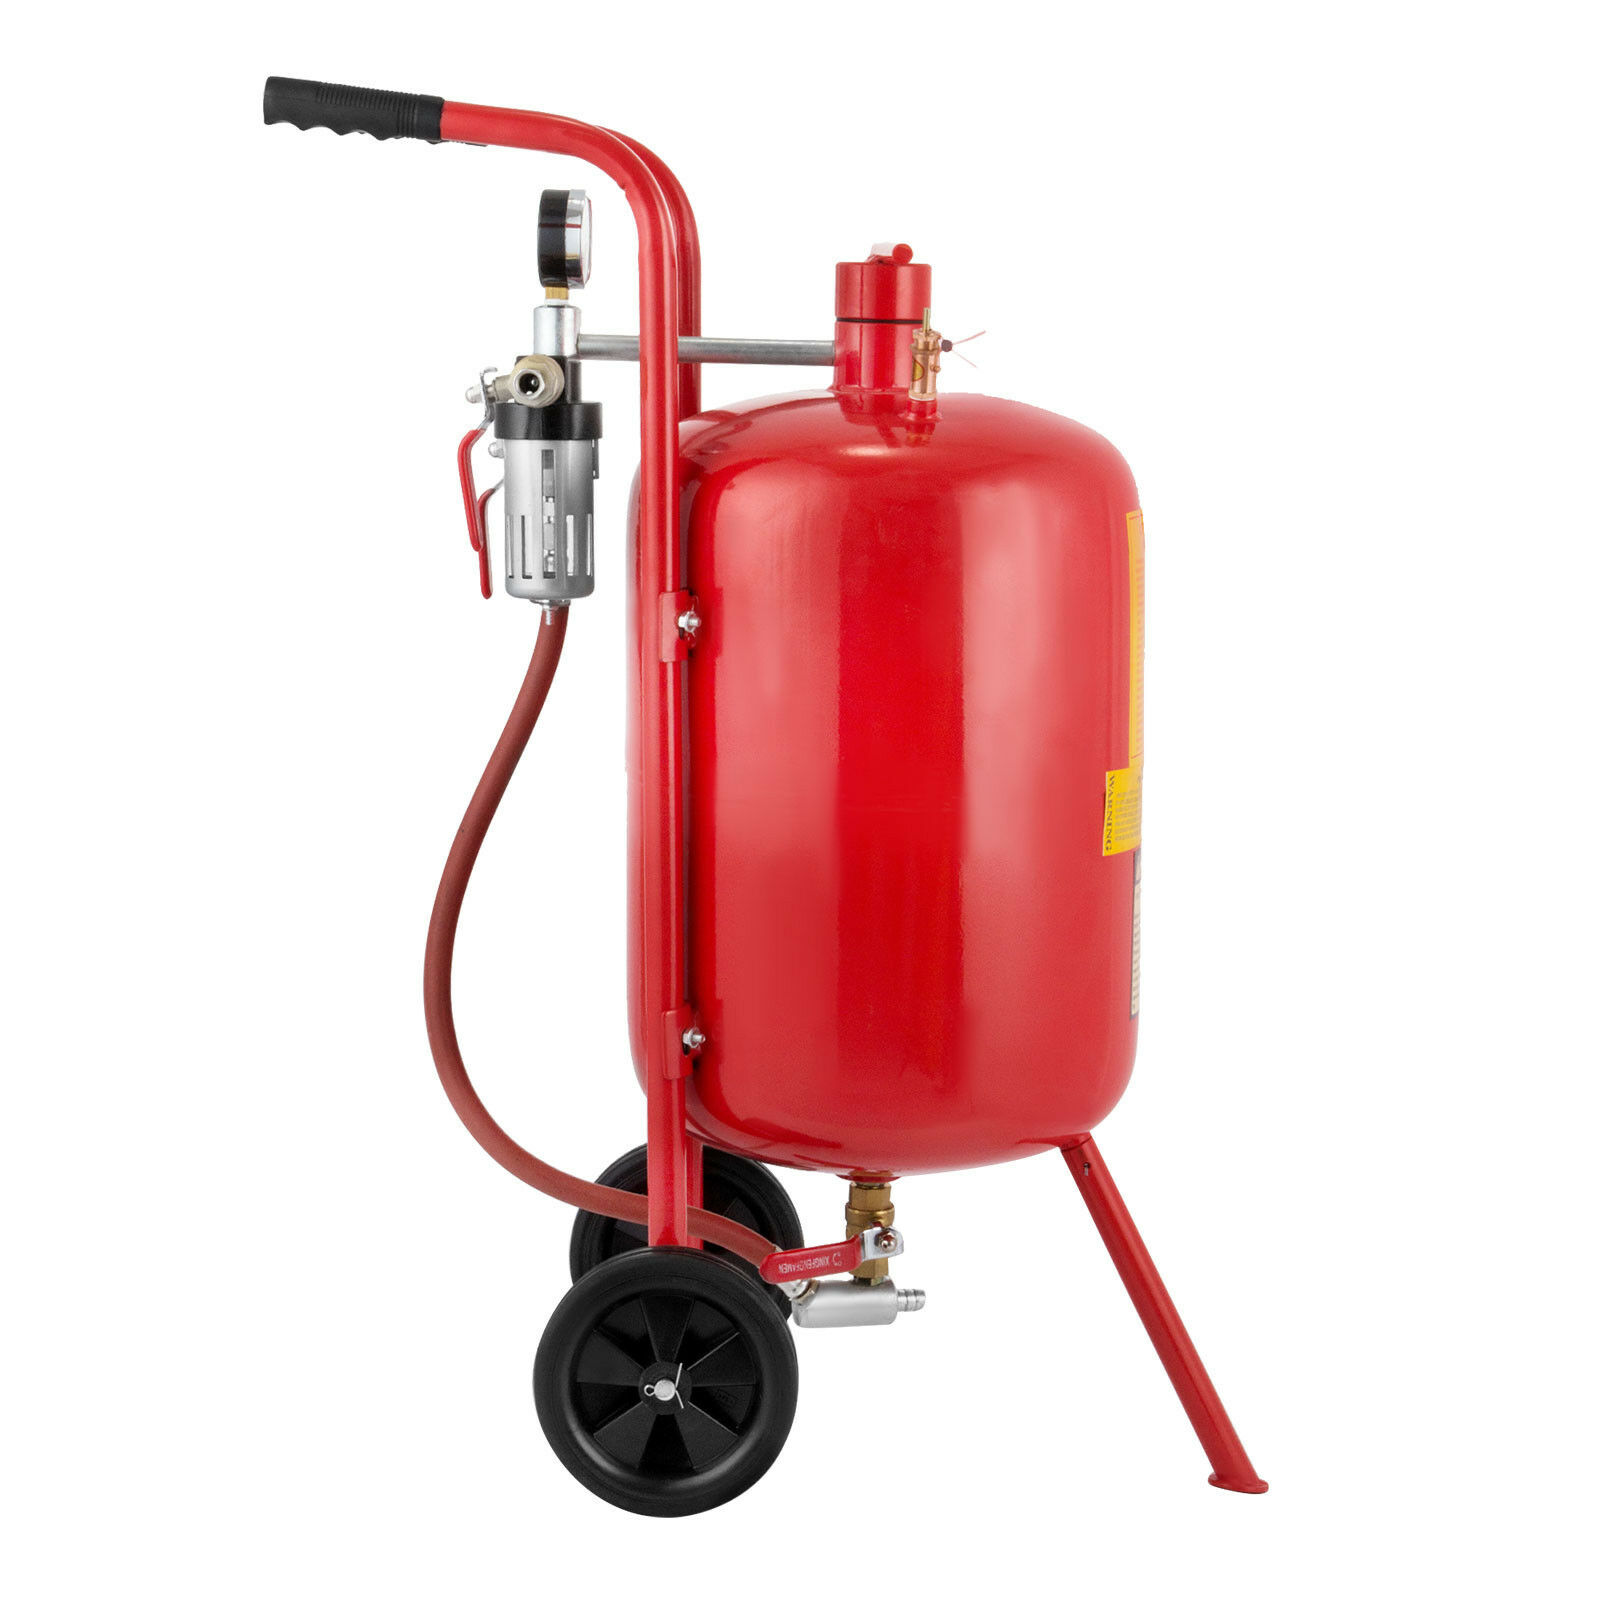 Portable Sandblaster with 30L Storage Tank Wheels and Accessories